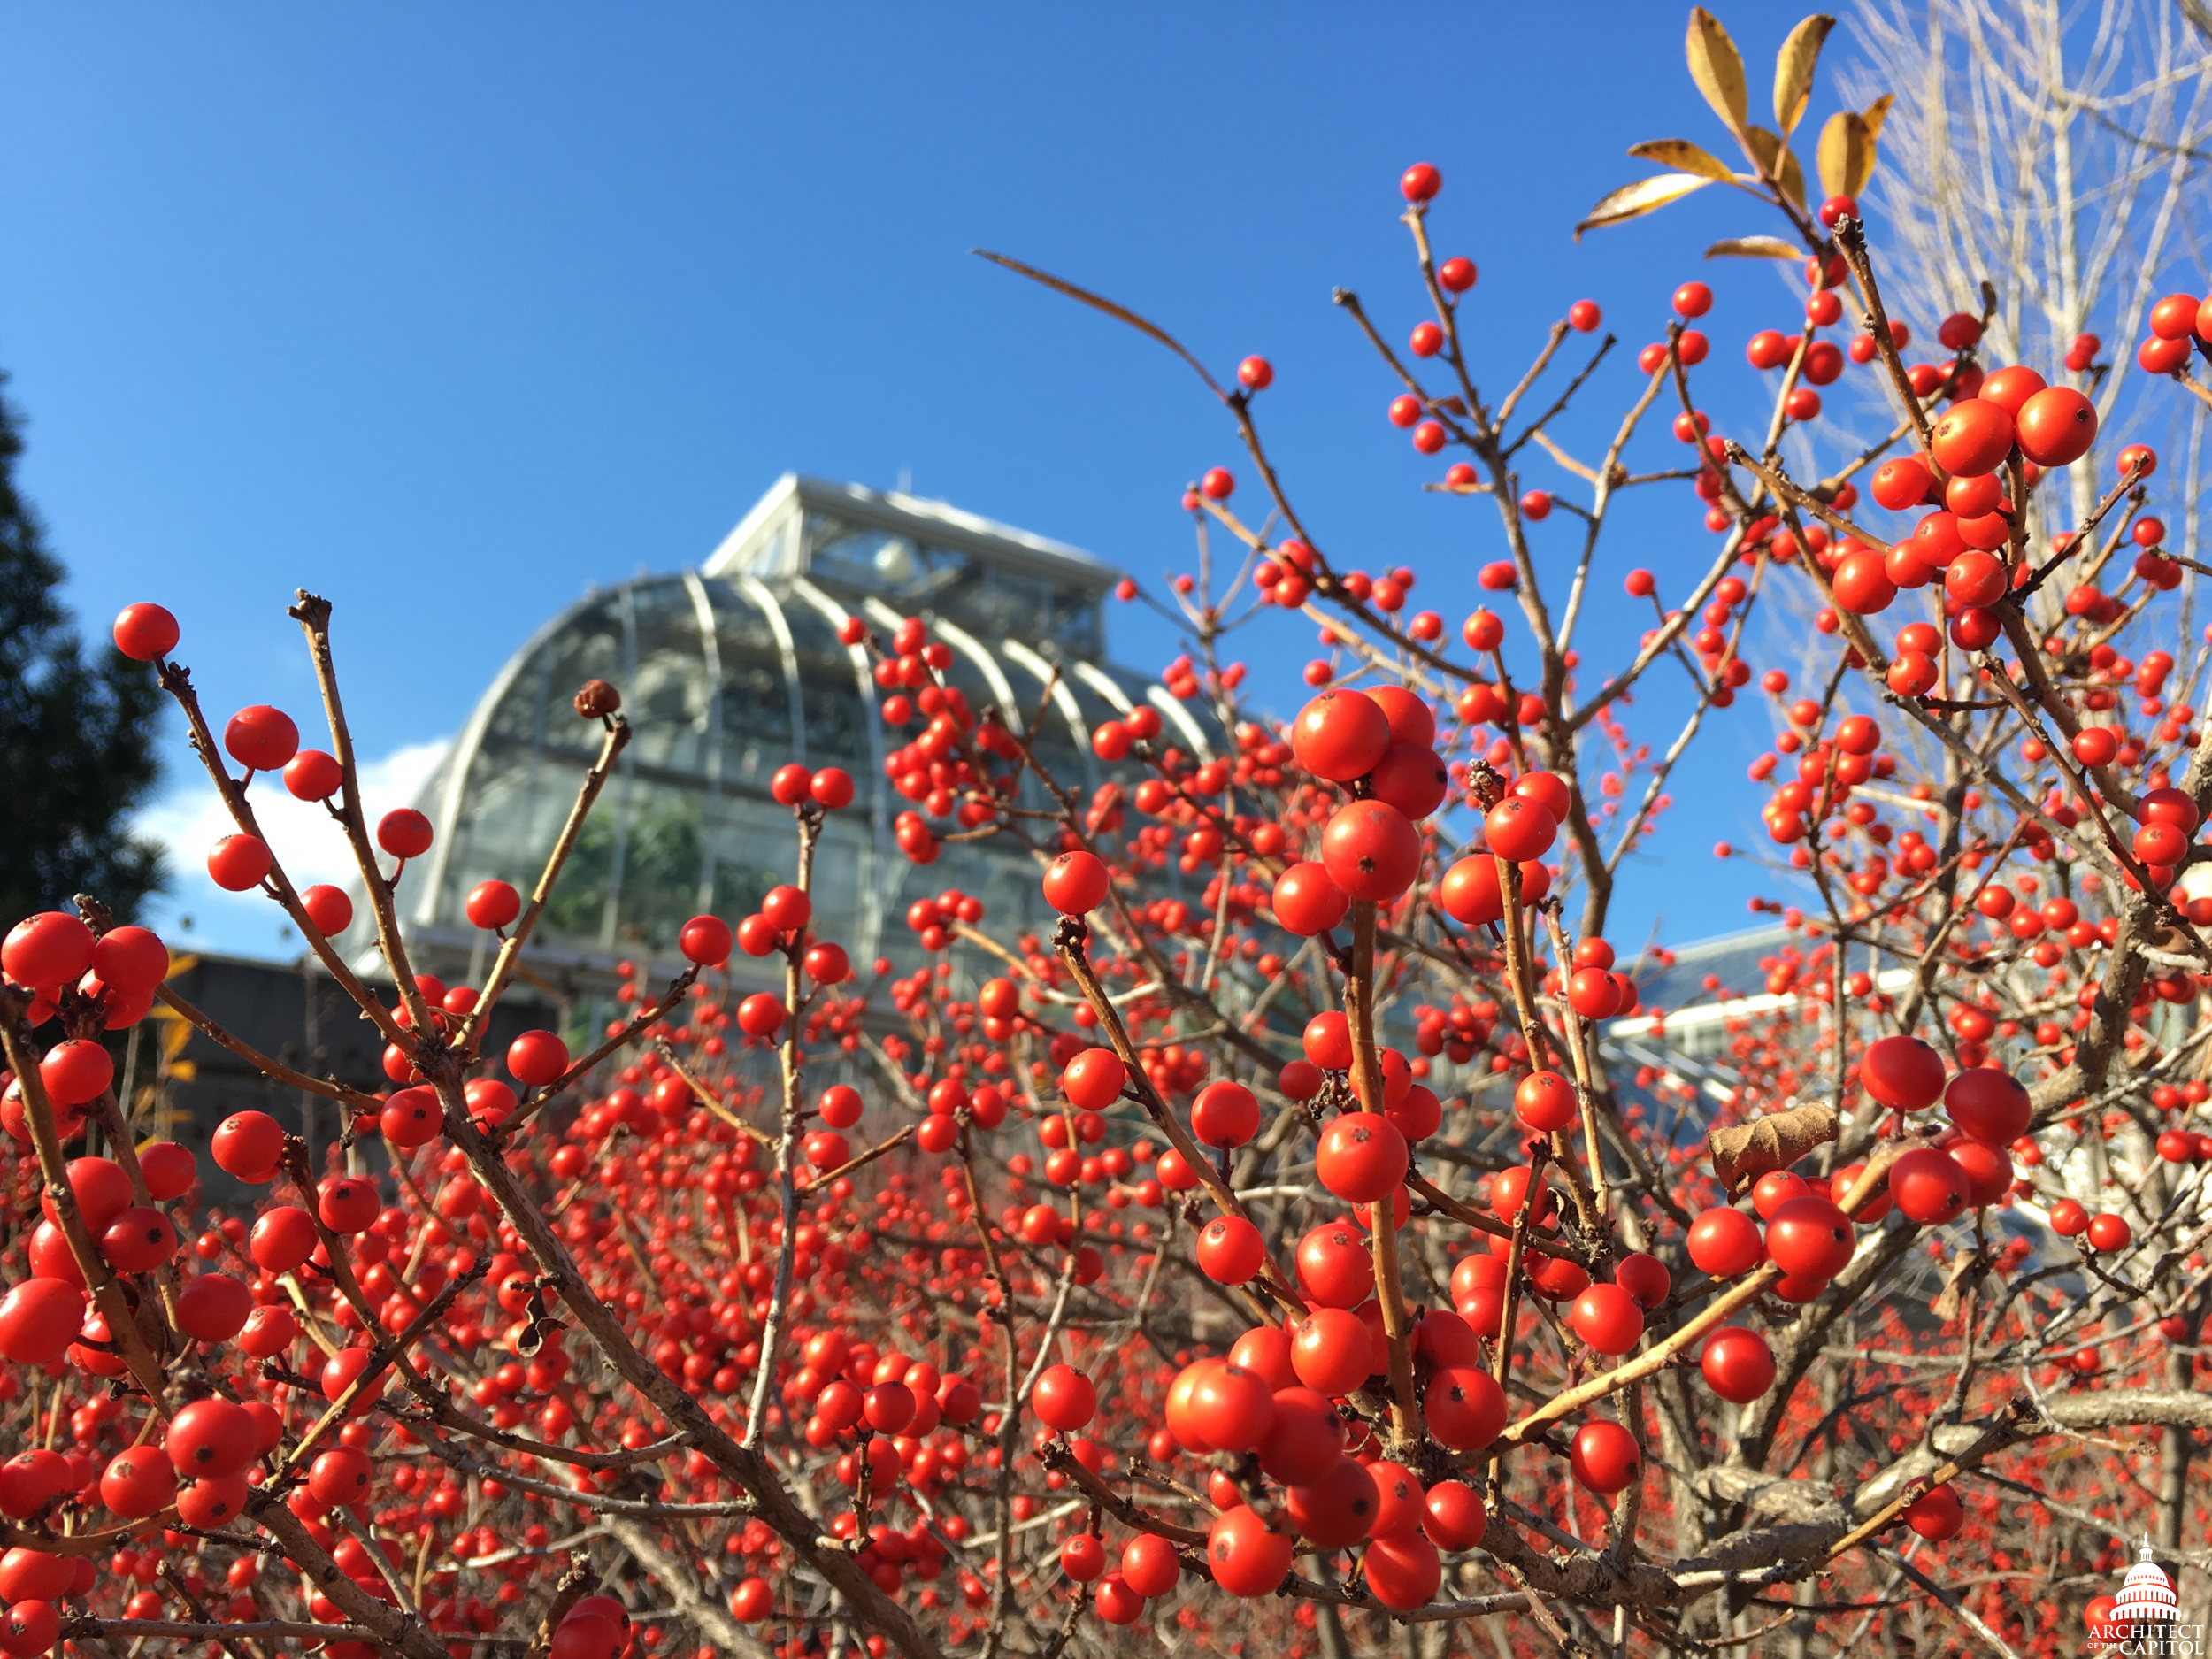 Winterberries (Ilex verticillata) - winter at United States Botanic Garden.